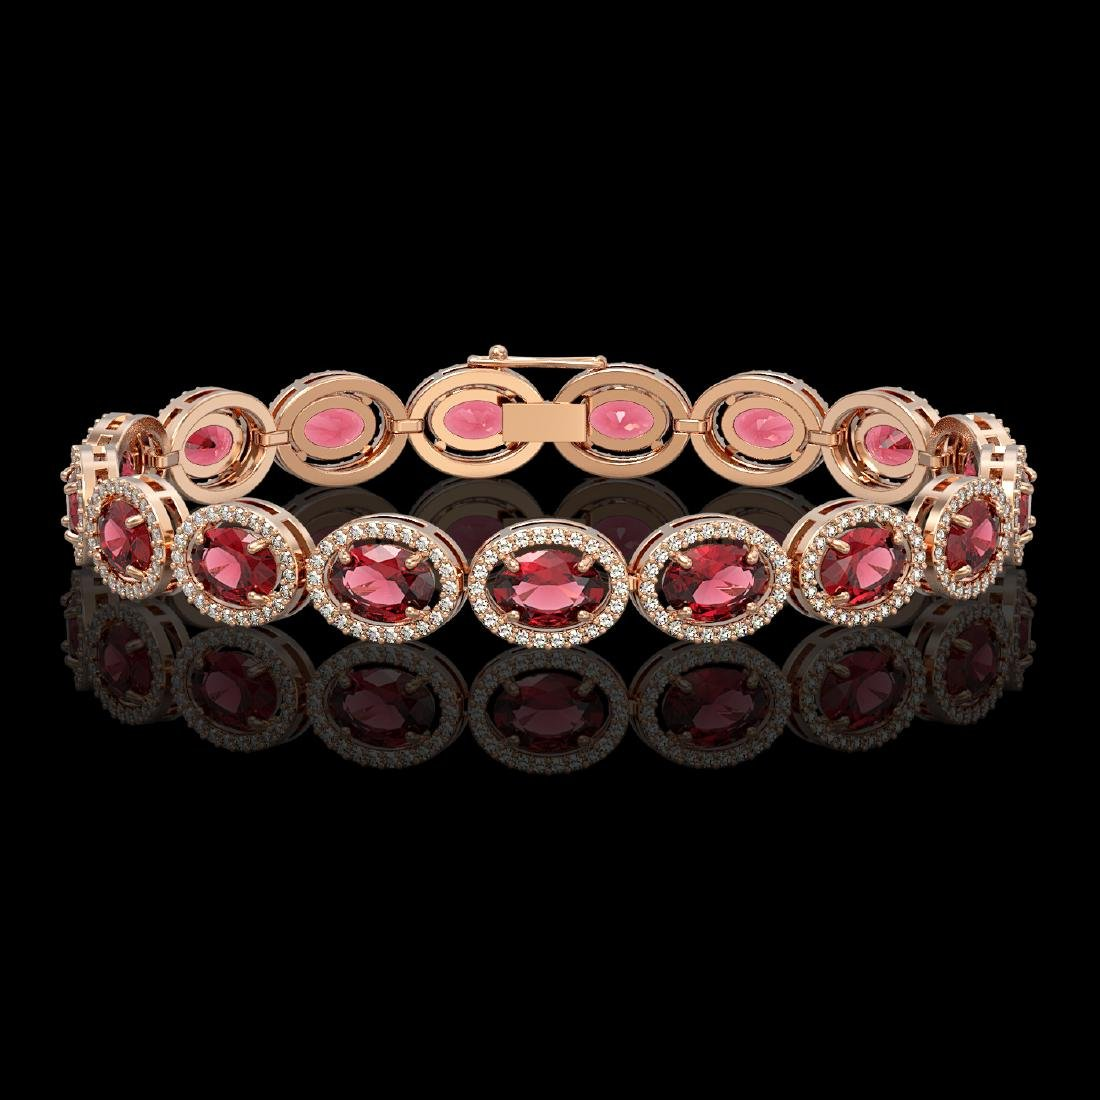 21.71 CTW Tourmaline & Diamond Halo Bracelet 10K Rose